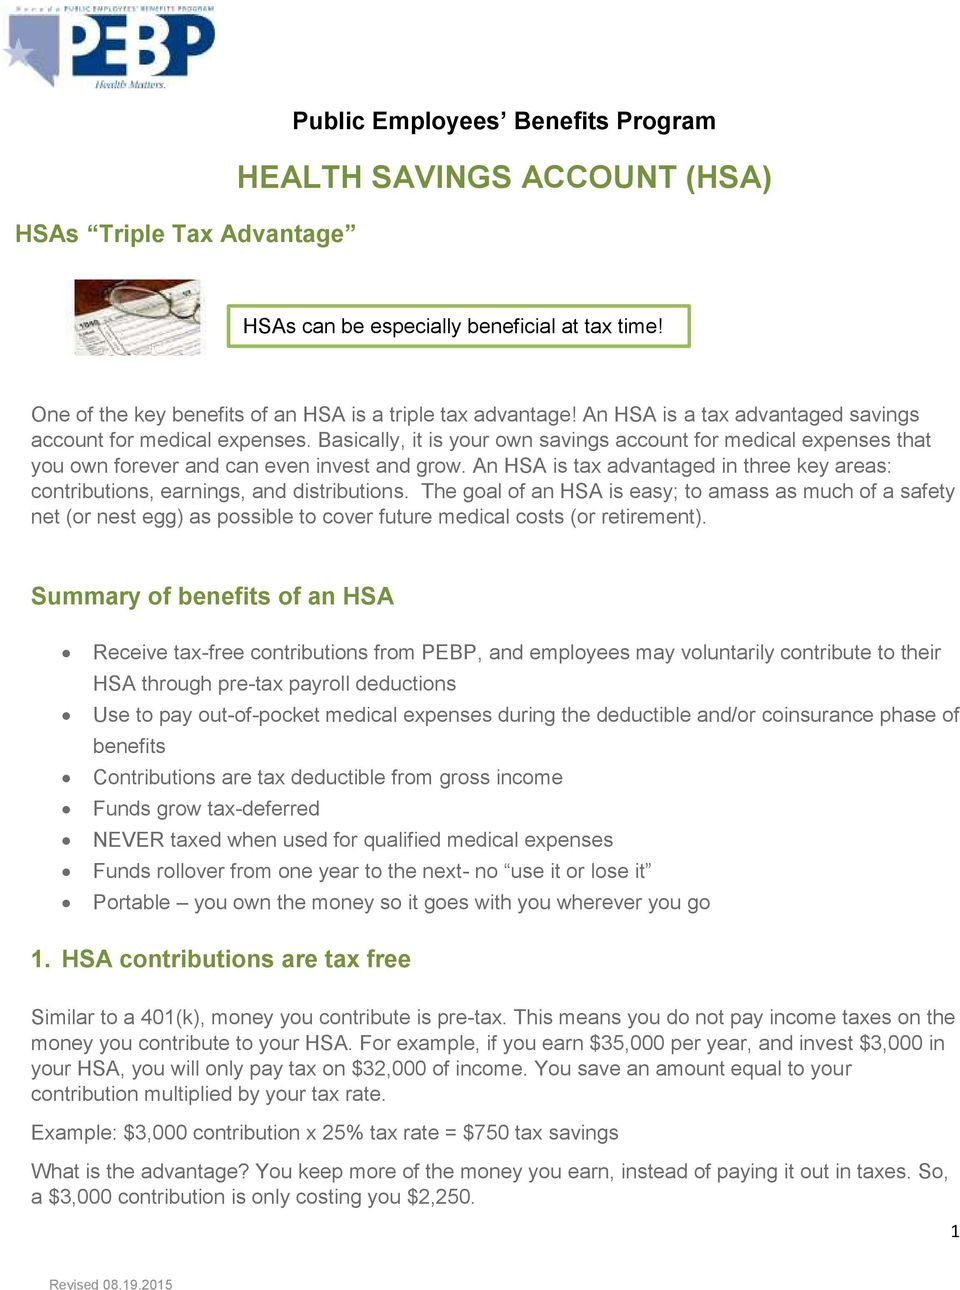 An HSA is tax advantaged in three key areas: contributions, earnings, and distributions.